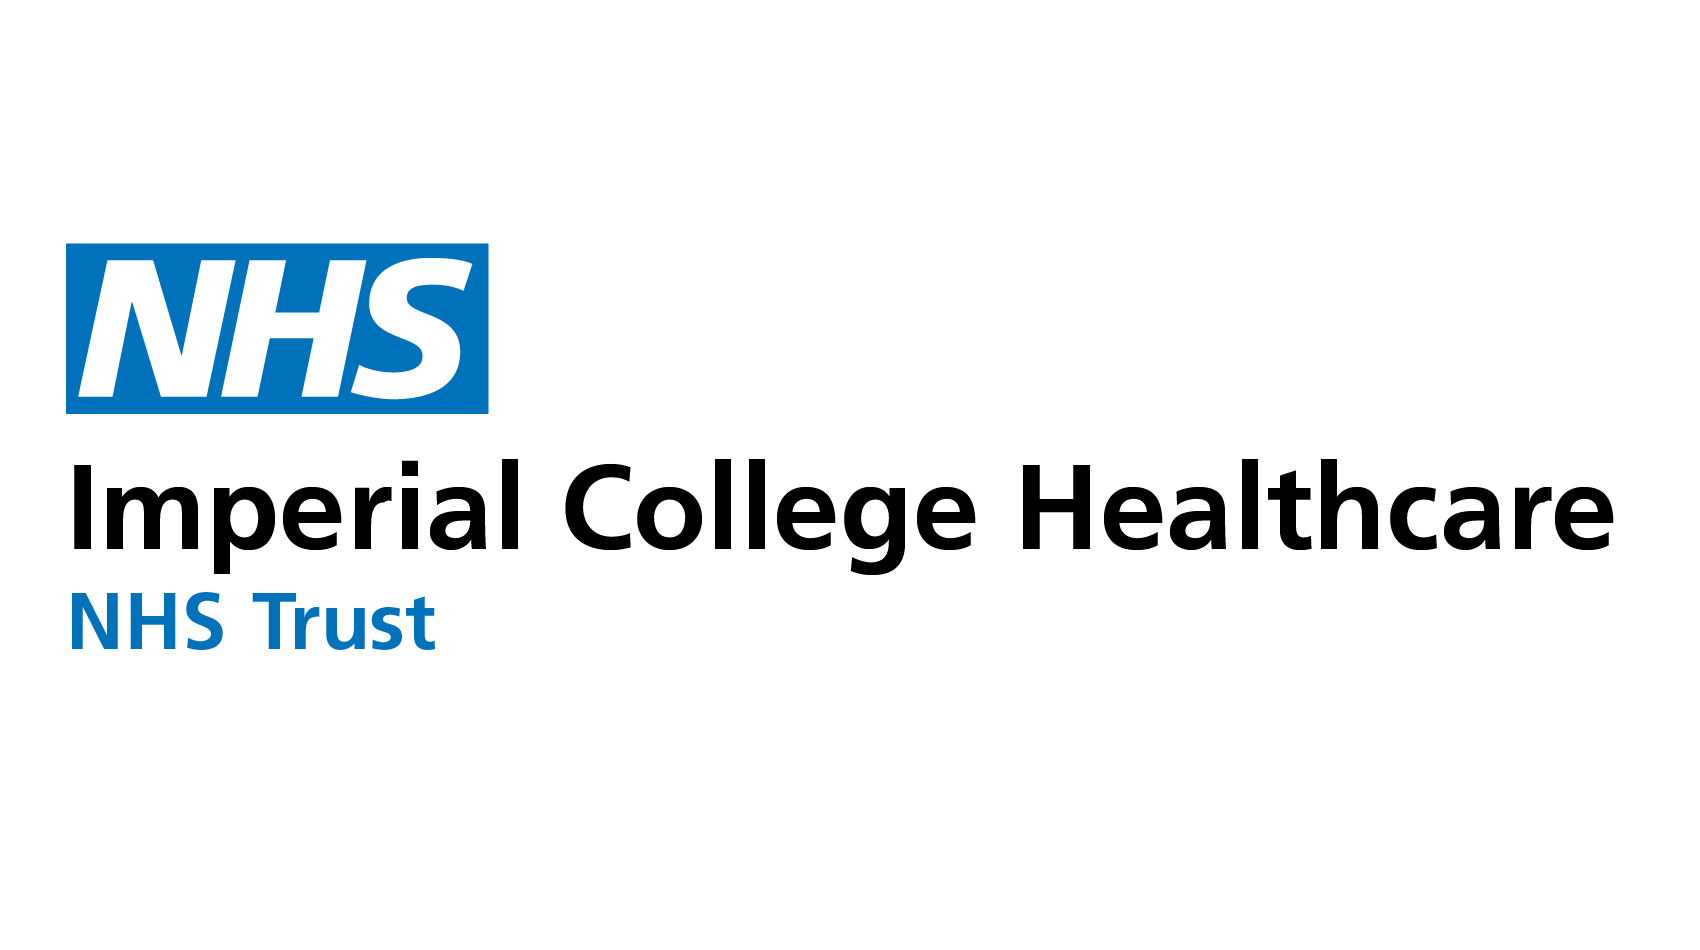 Imperial College Healthcare NHS Trust